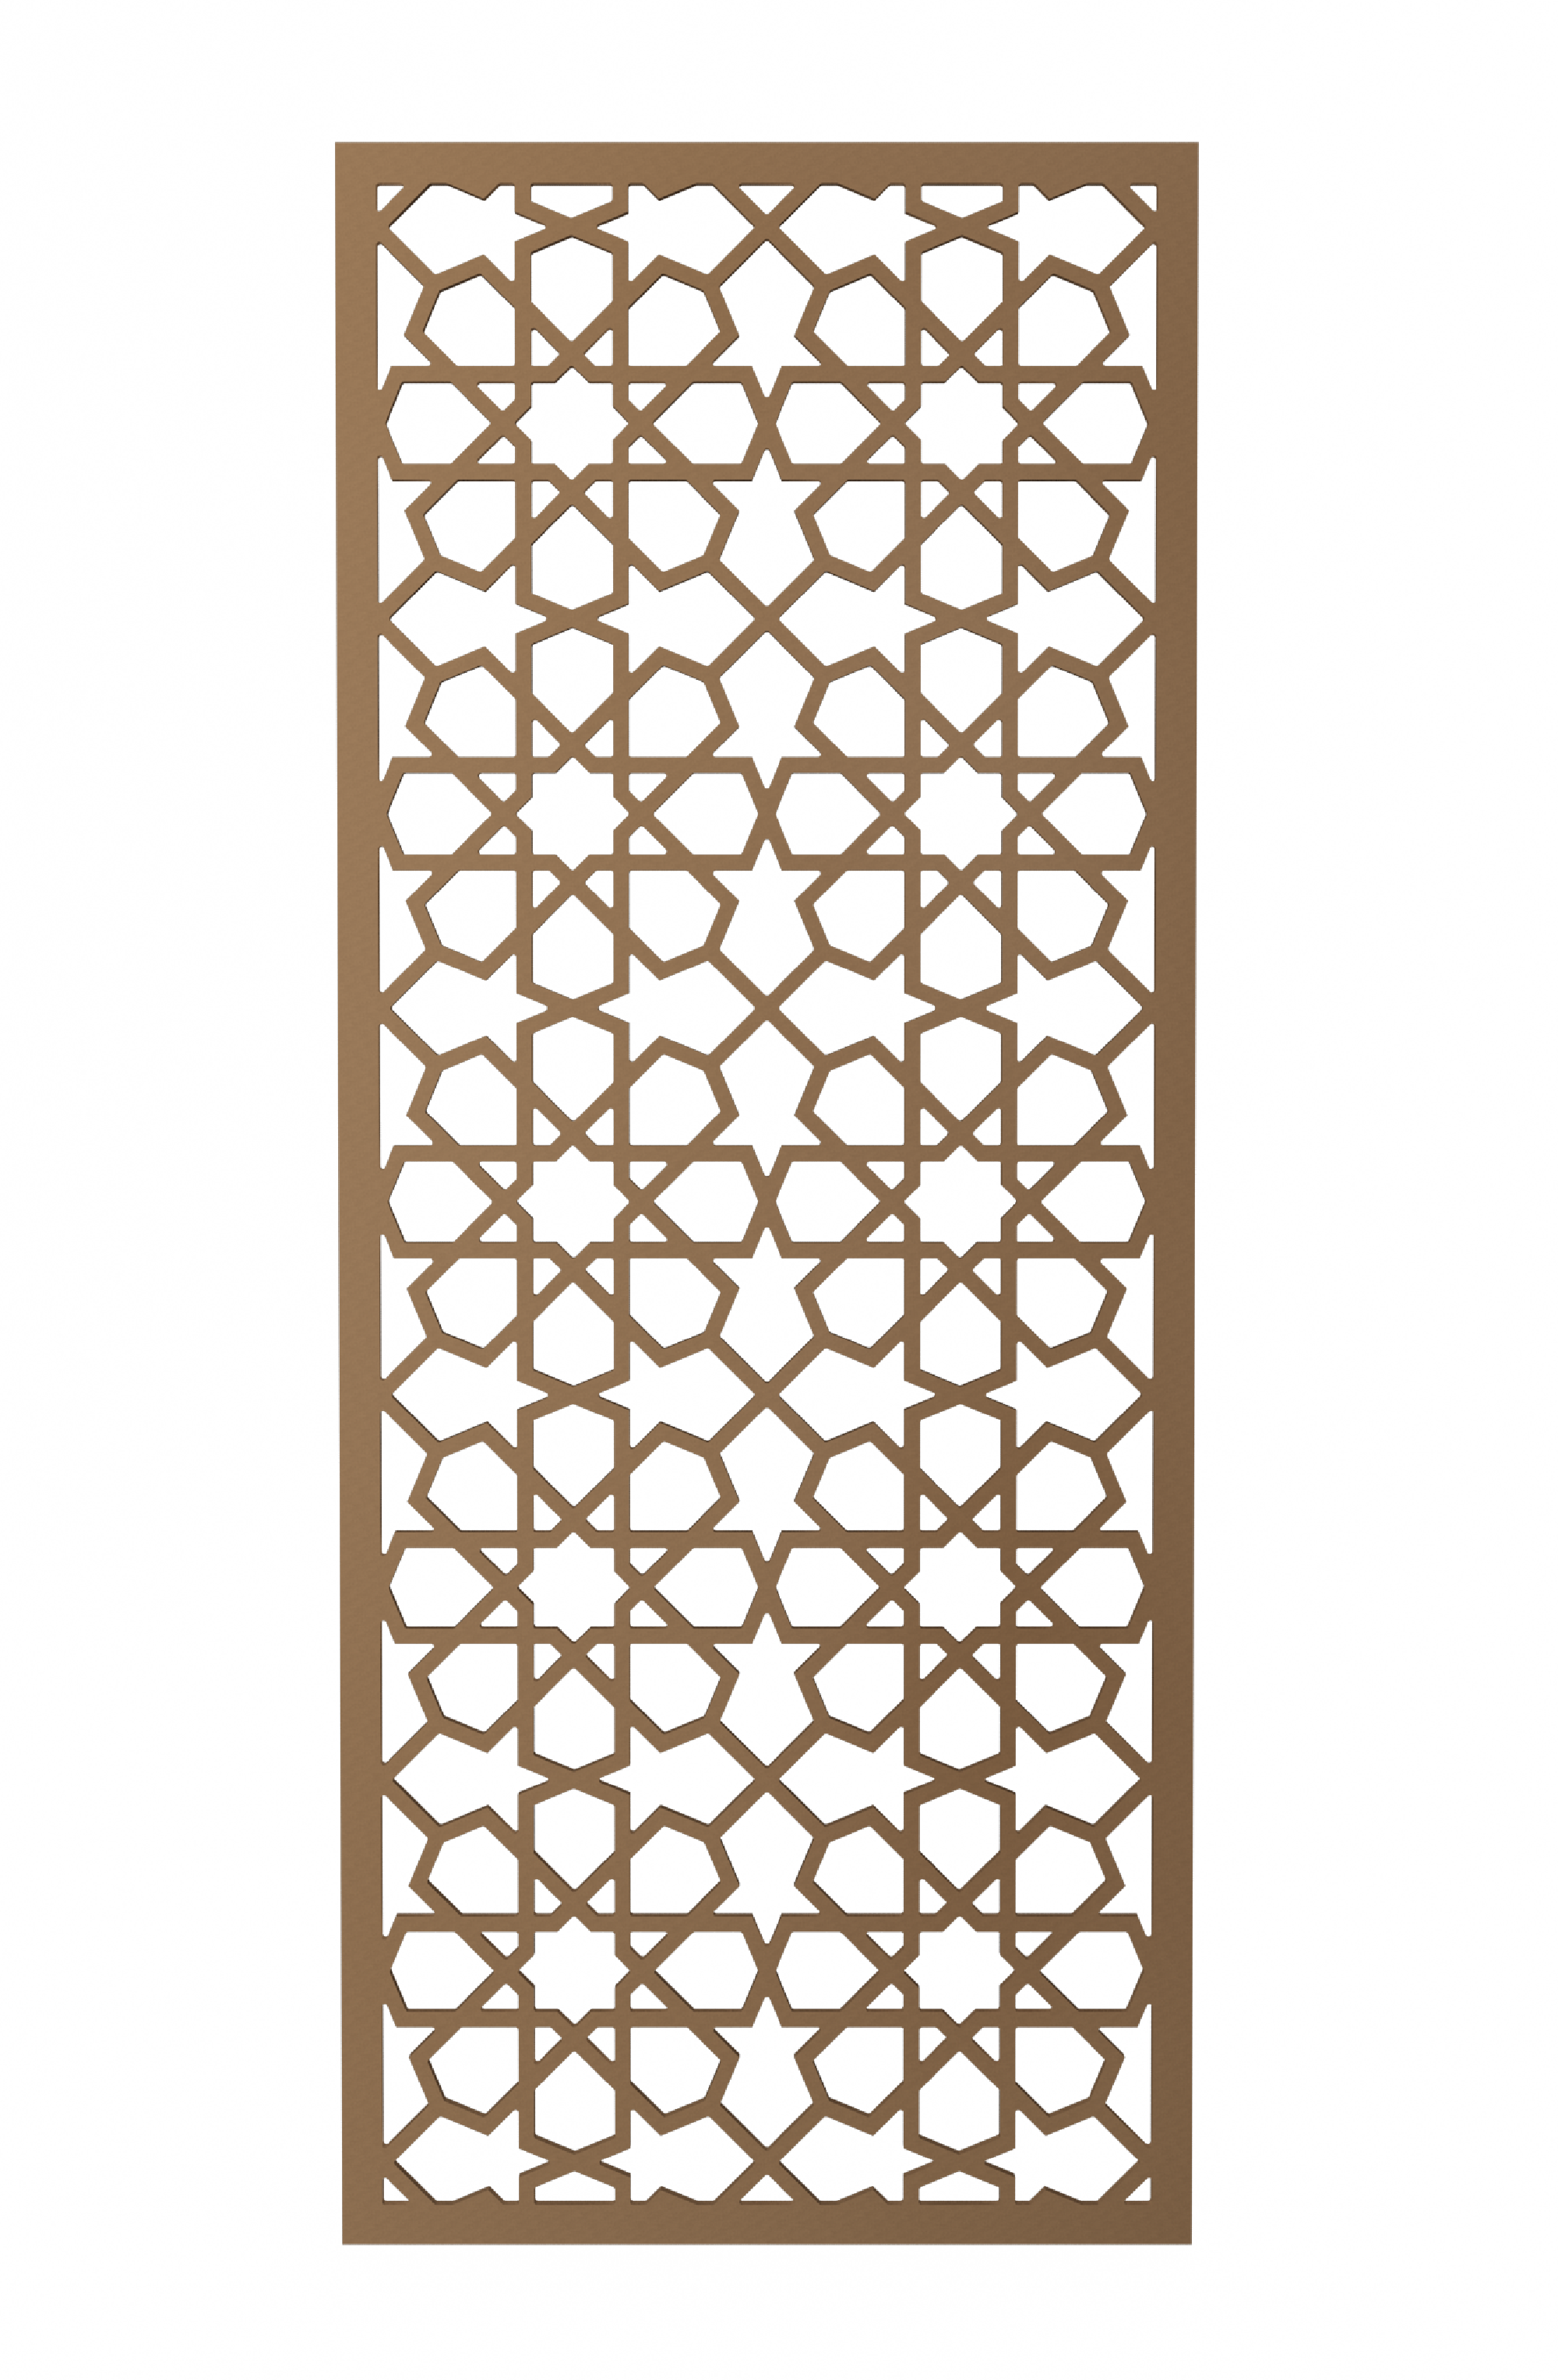 Room Dividers Room Partitions Room Divider Screen Portable Room Dividers Panel Room Divider Decorative Room Divider Bedroom Dividers 2020